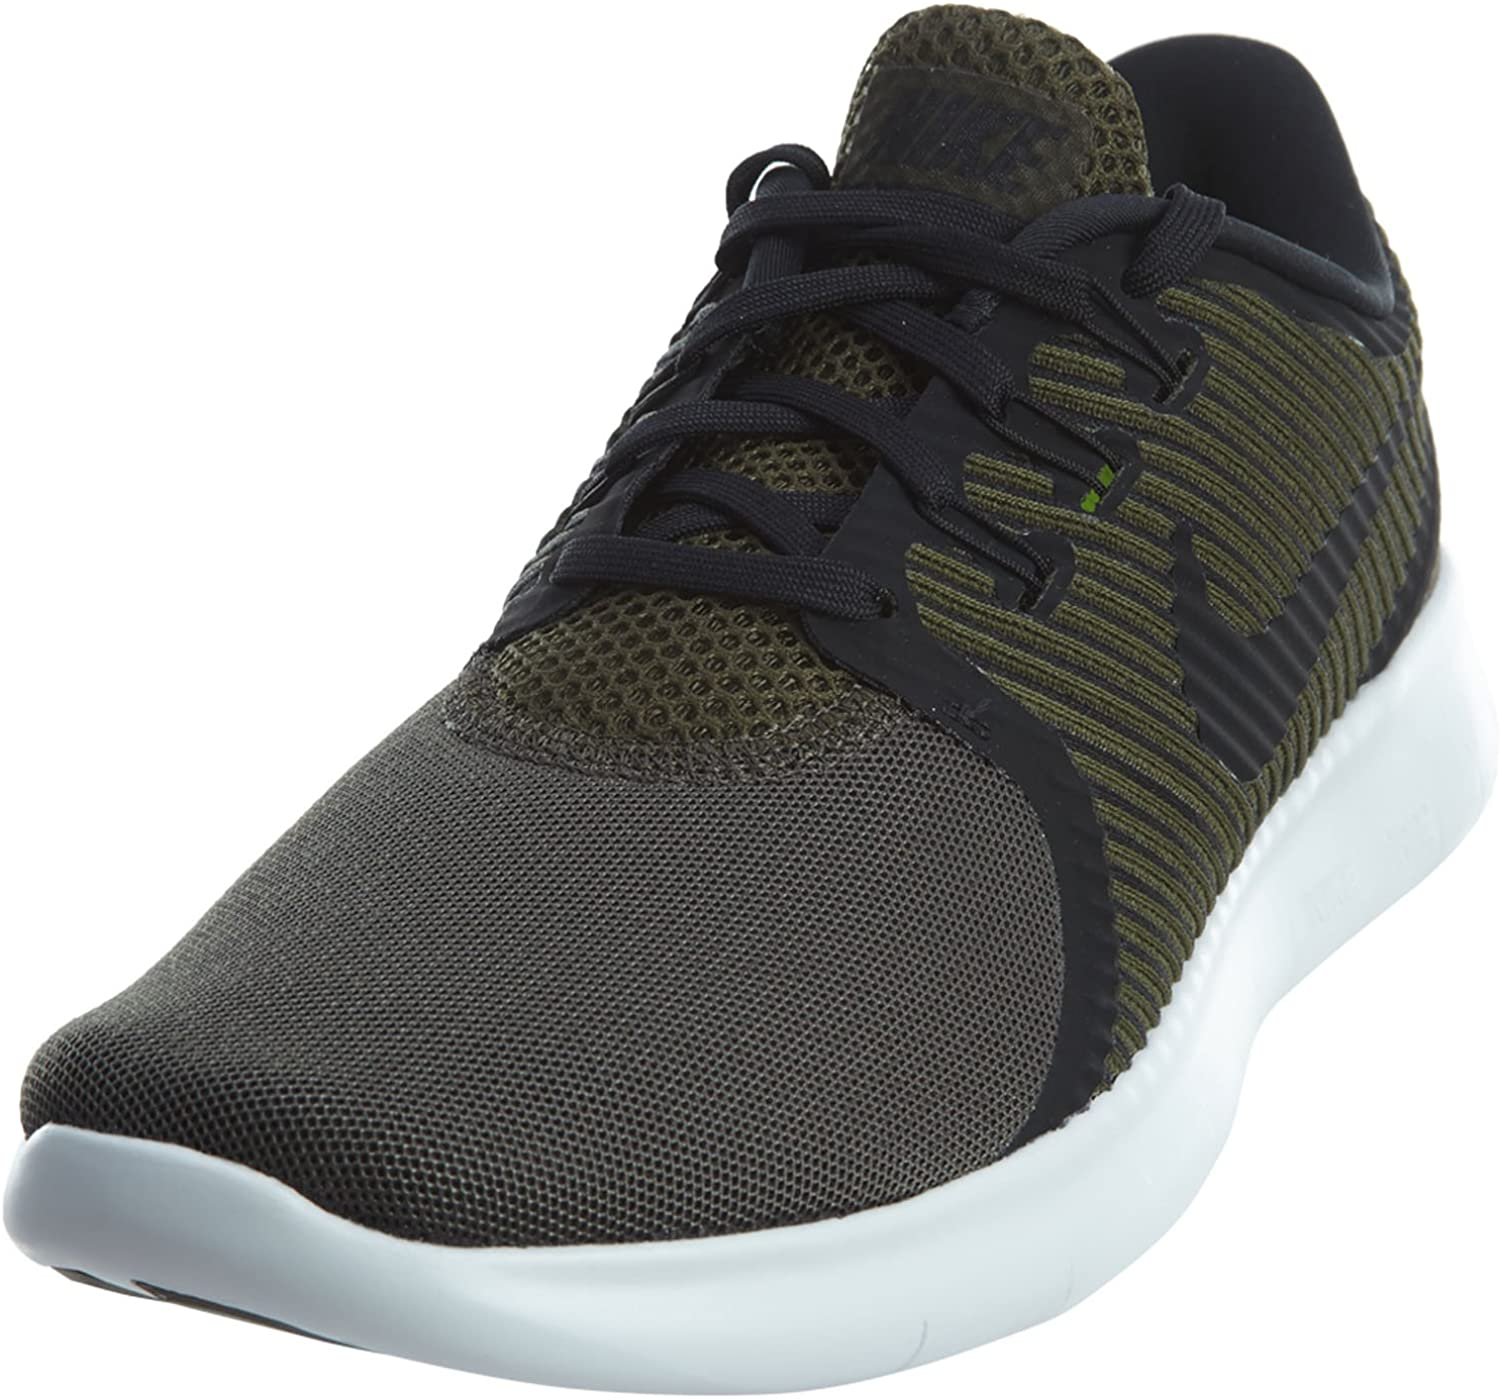 Nike Men's Free Rn CMTR Running shoes